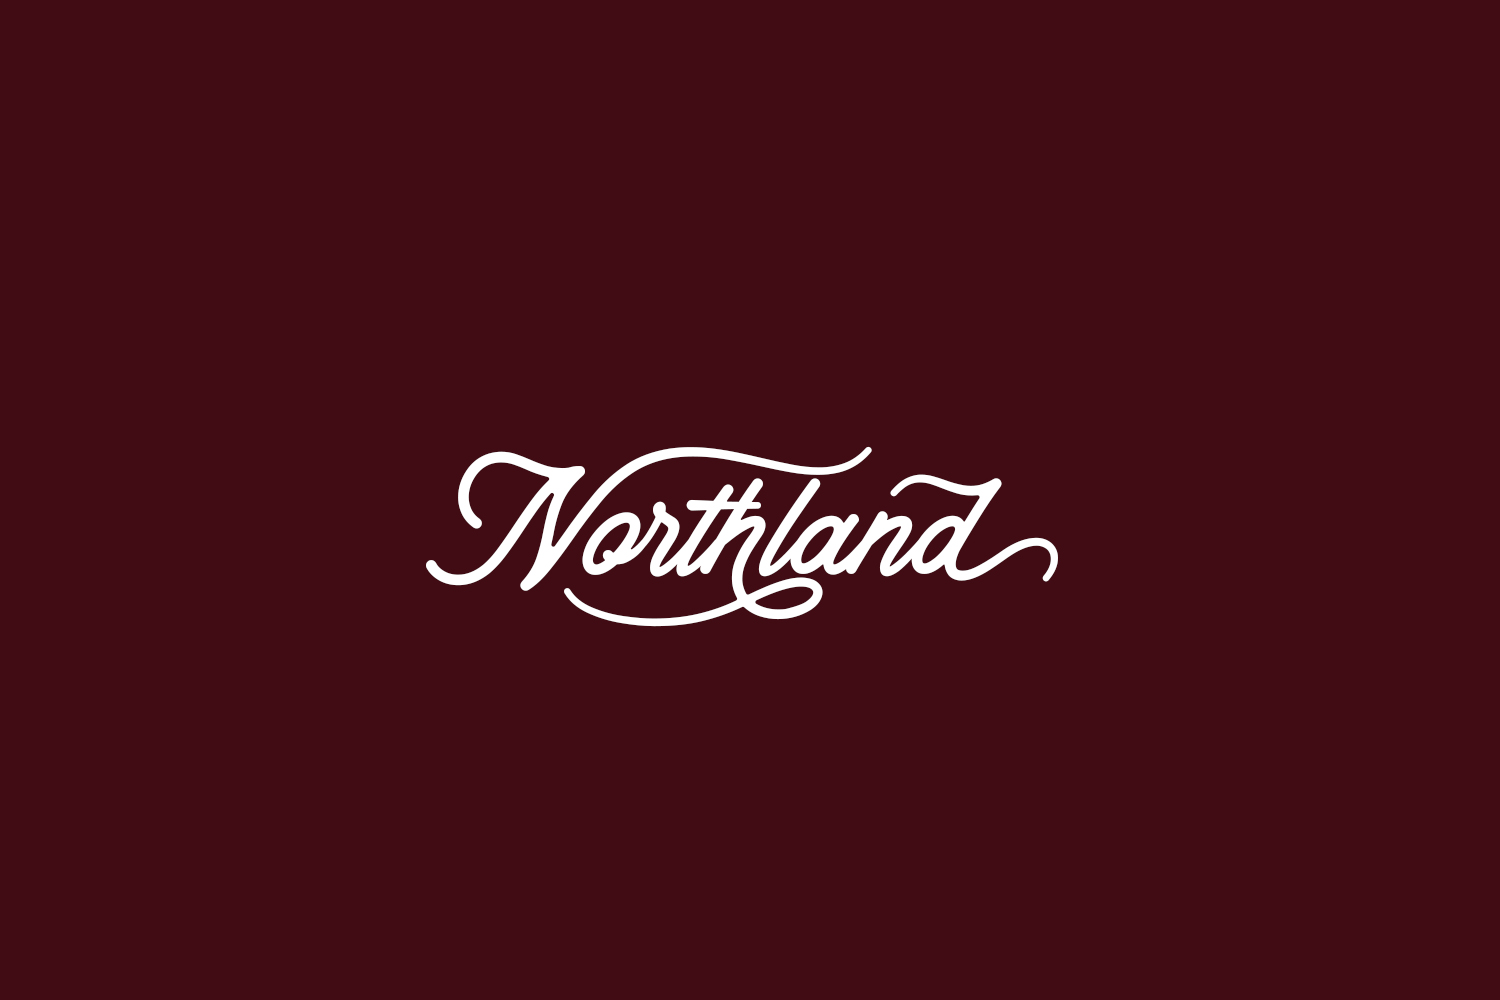 Northland Free Font